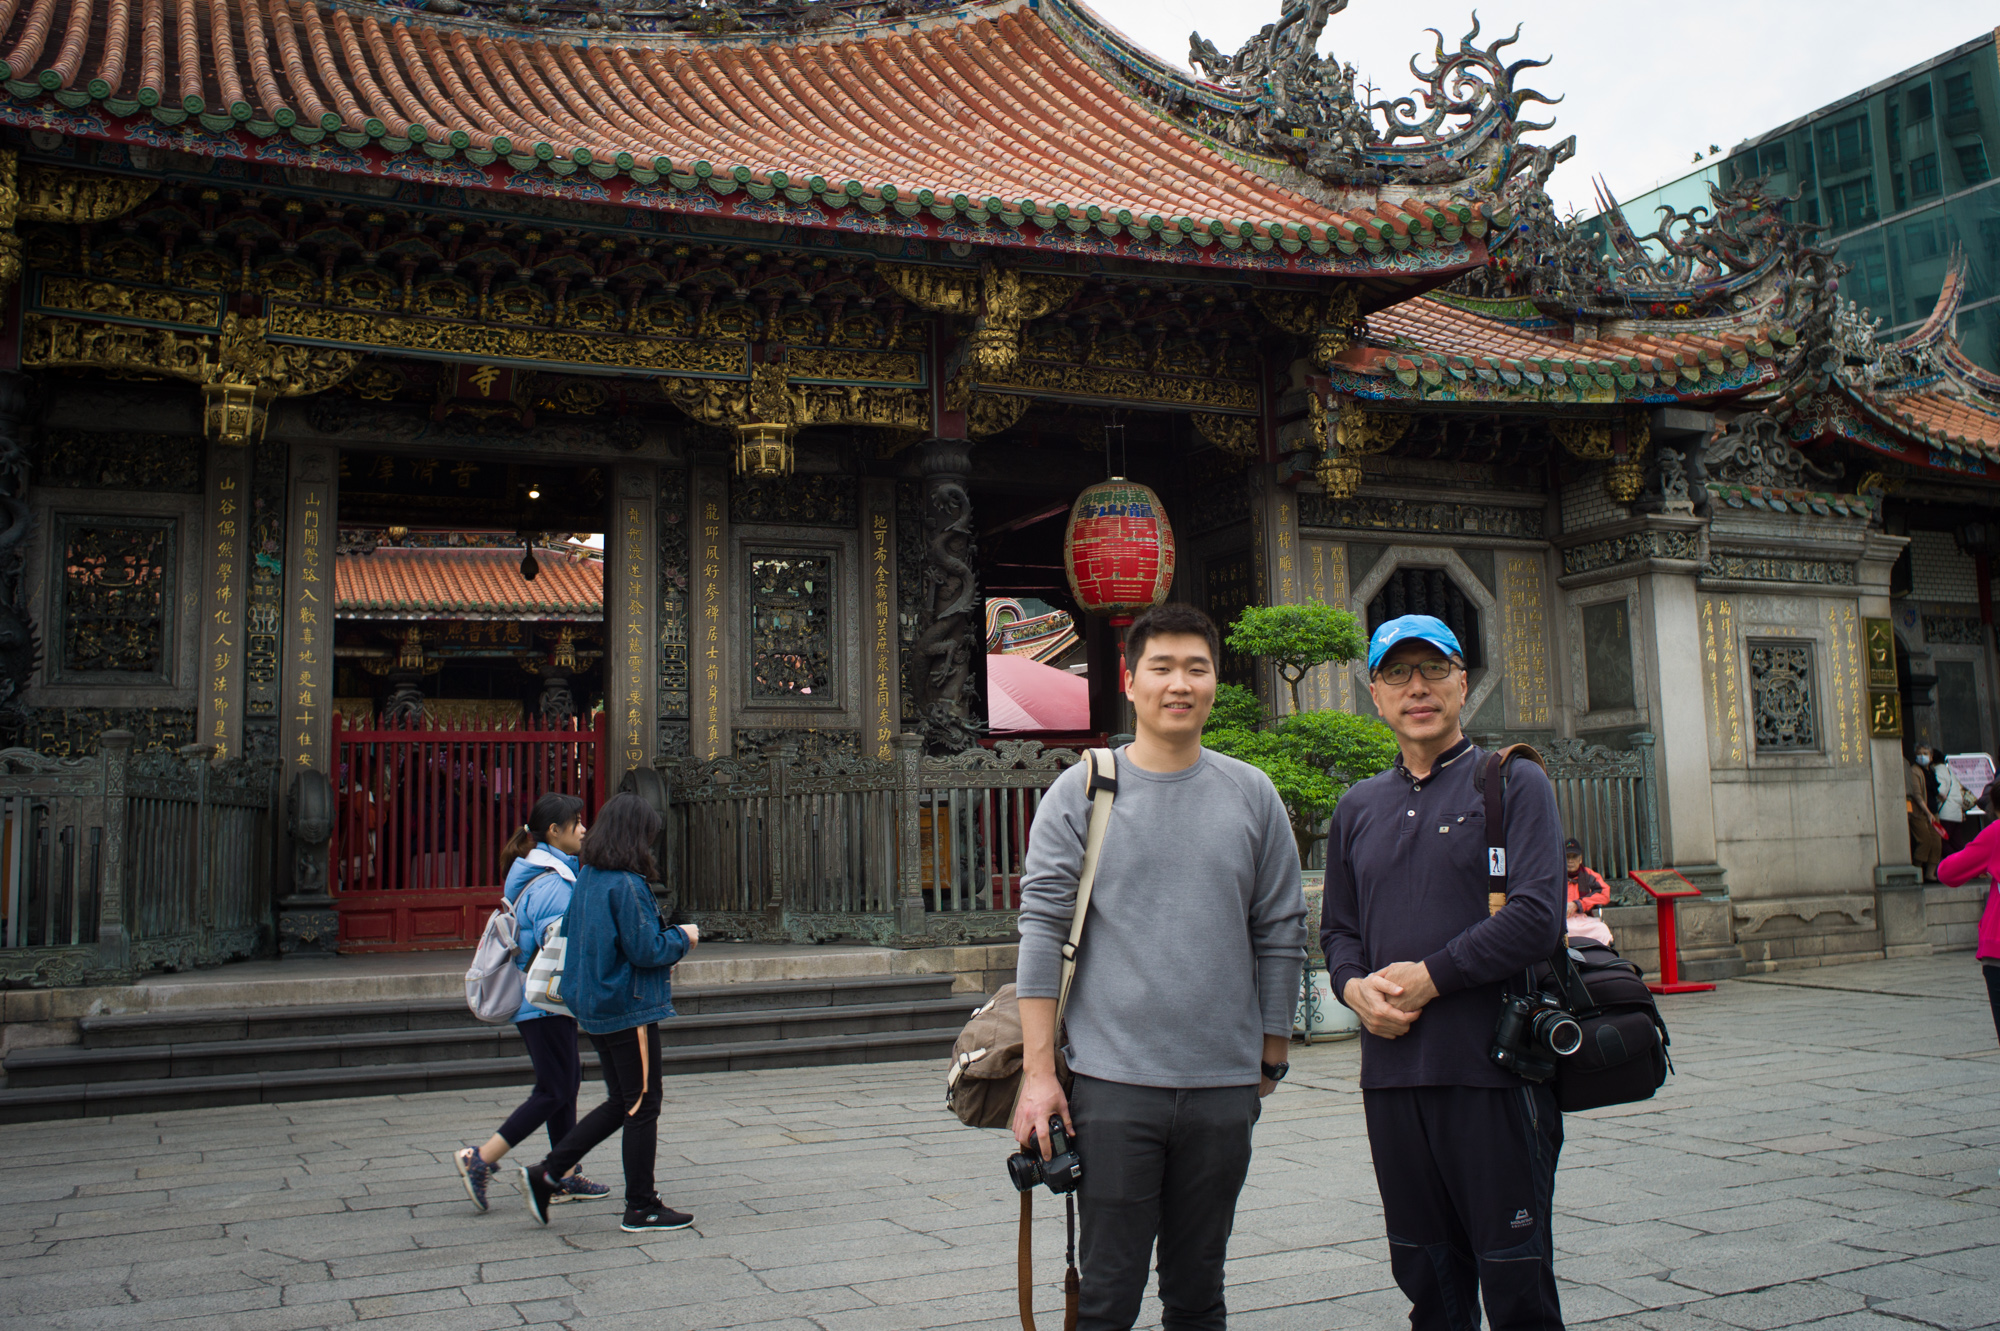 Two men's photowalk, Longshan temple